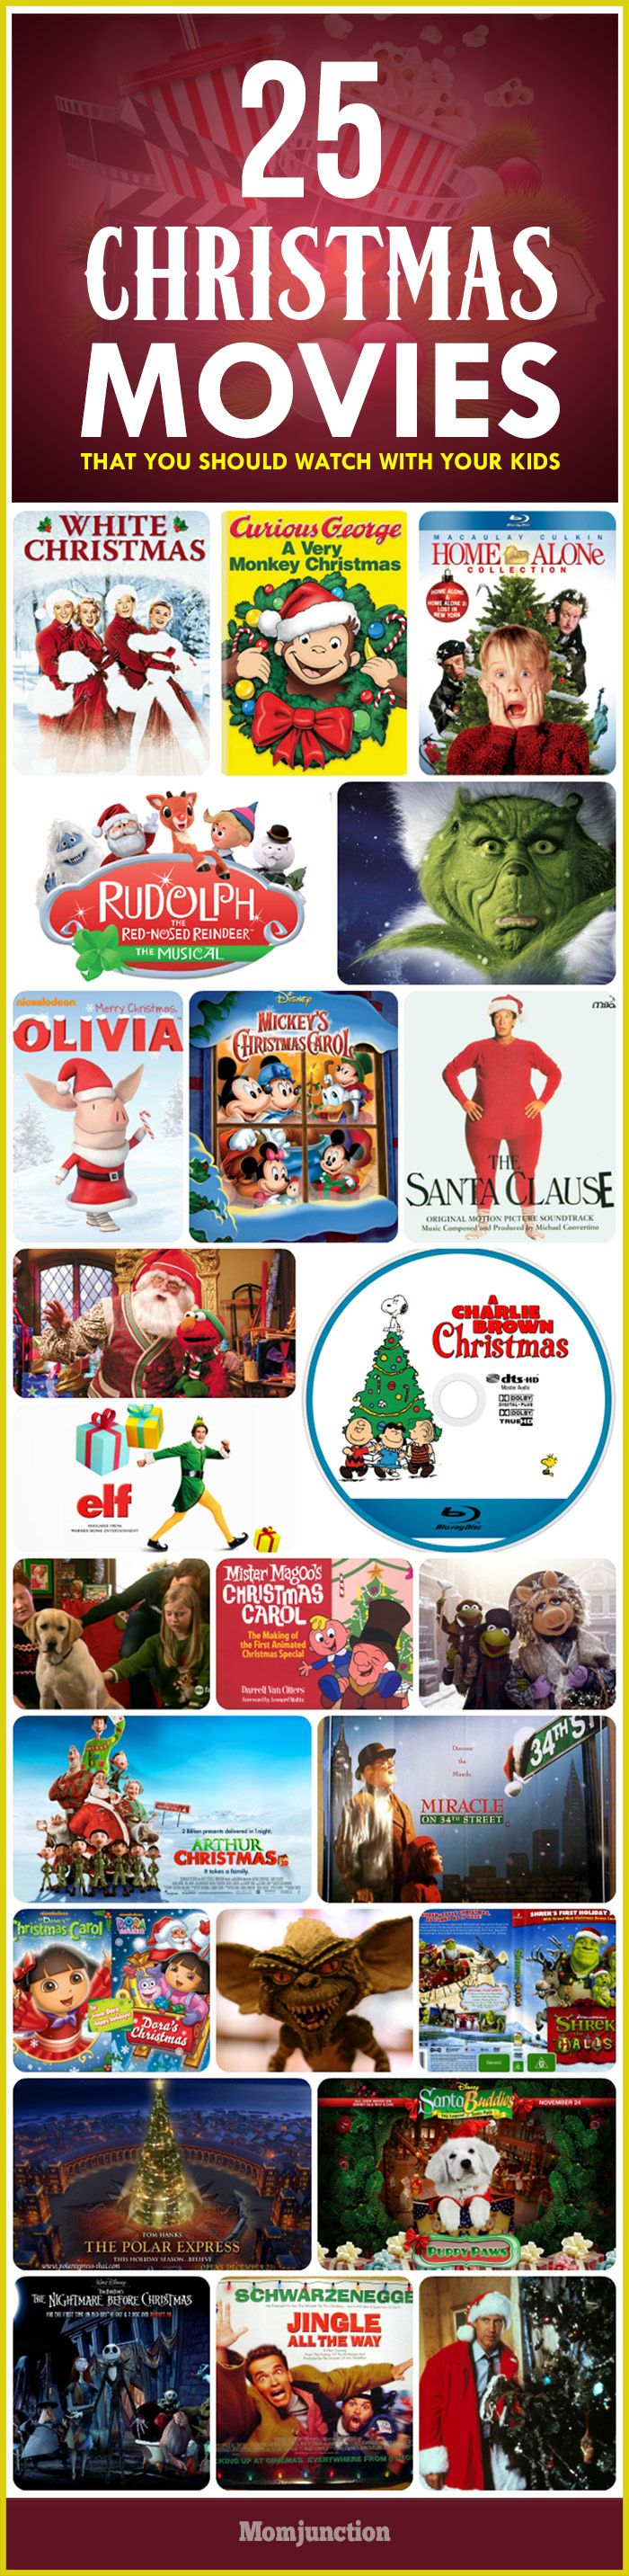 Top 25 Funny English Movies For Kids To Watch | Pinterest | Movie ...